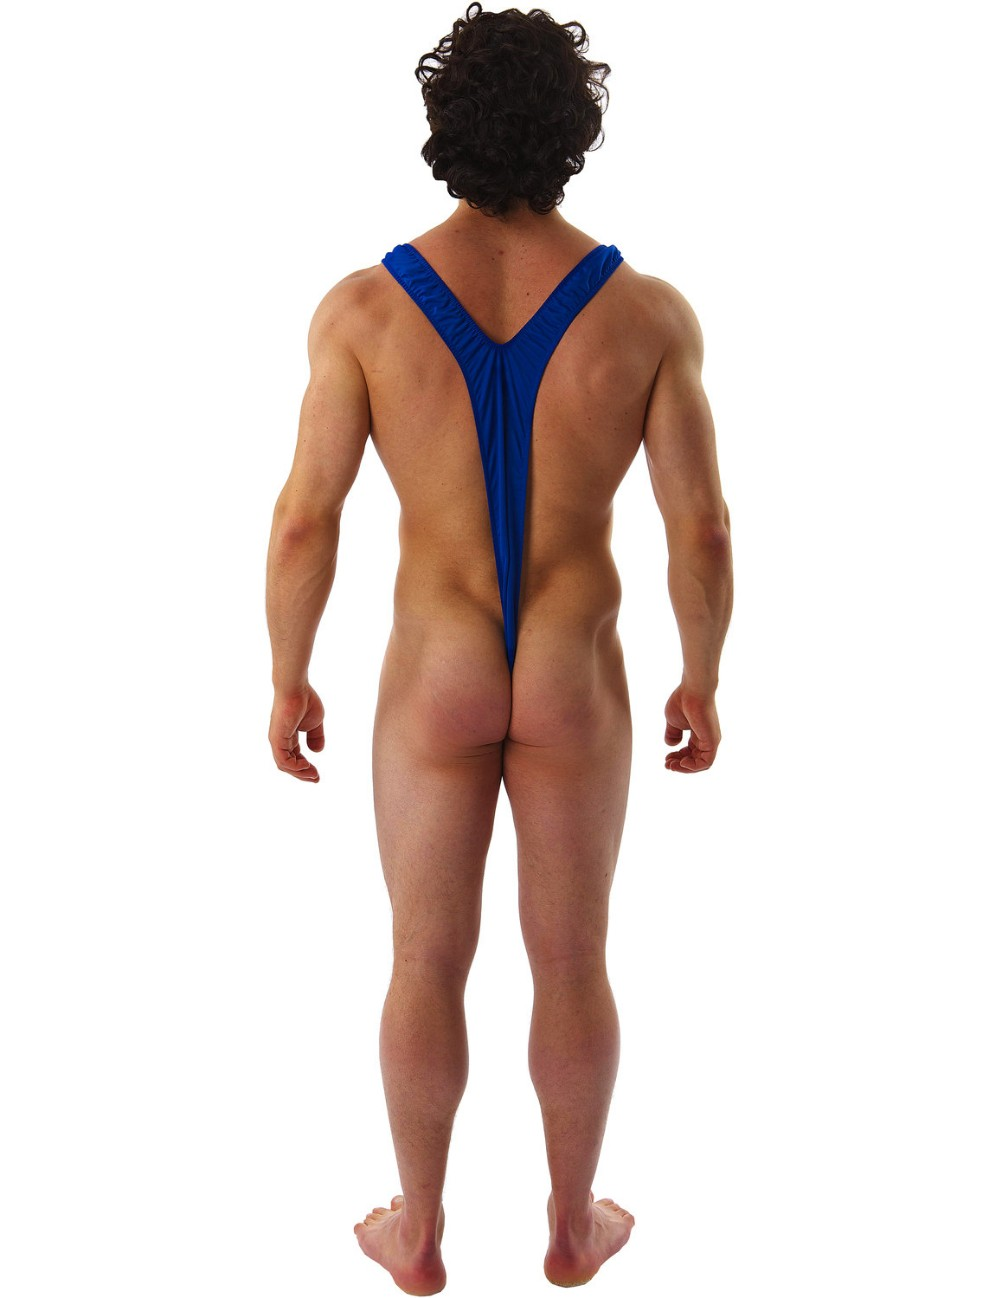 Borat Mankini Thong Swimsuit (Blue)